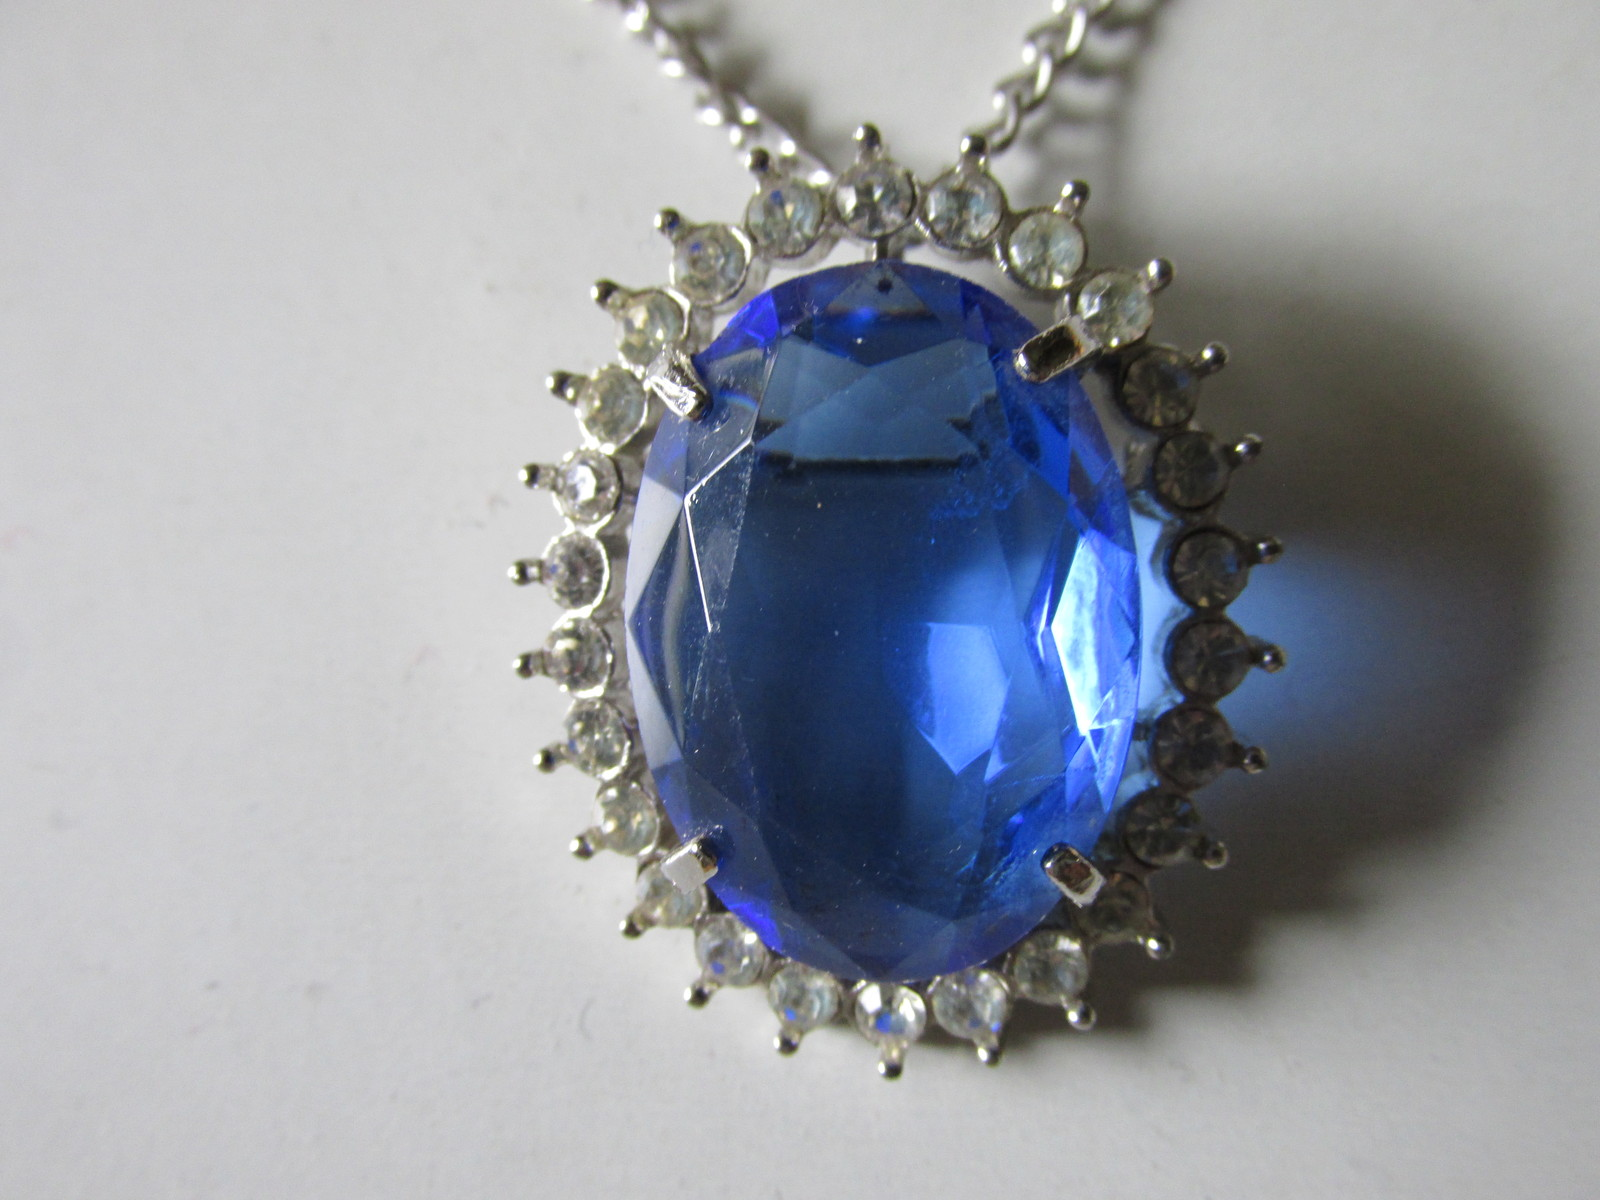 """Vintage Avon """"Creation In Blue"""" Faceted Glass Pendant Necklace / Brooch - 1972"""